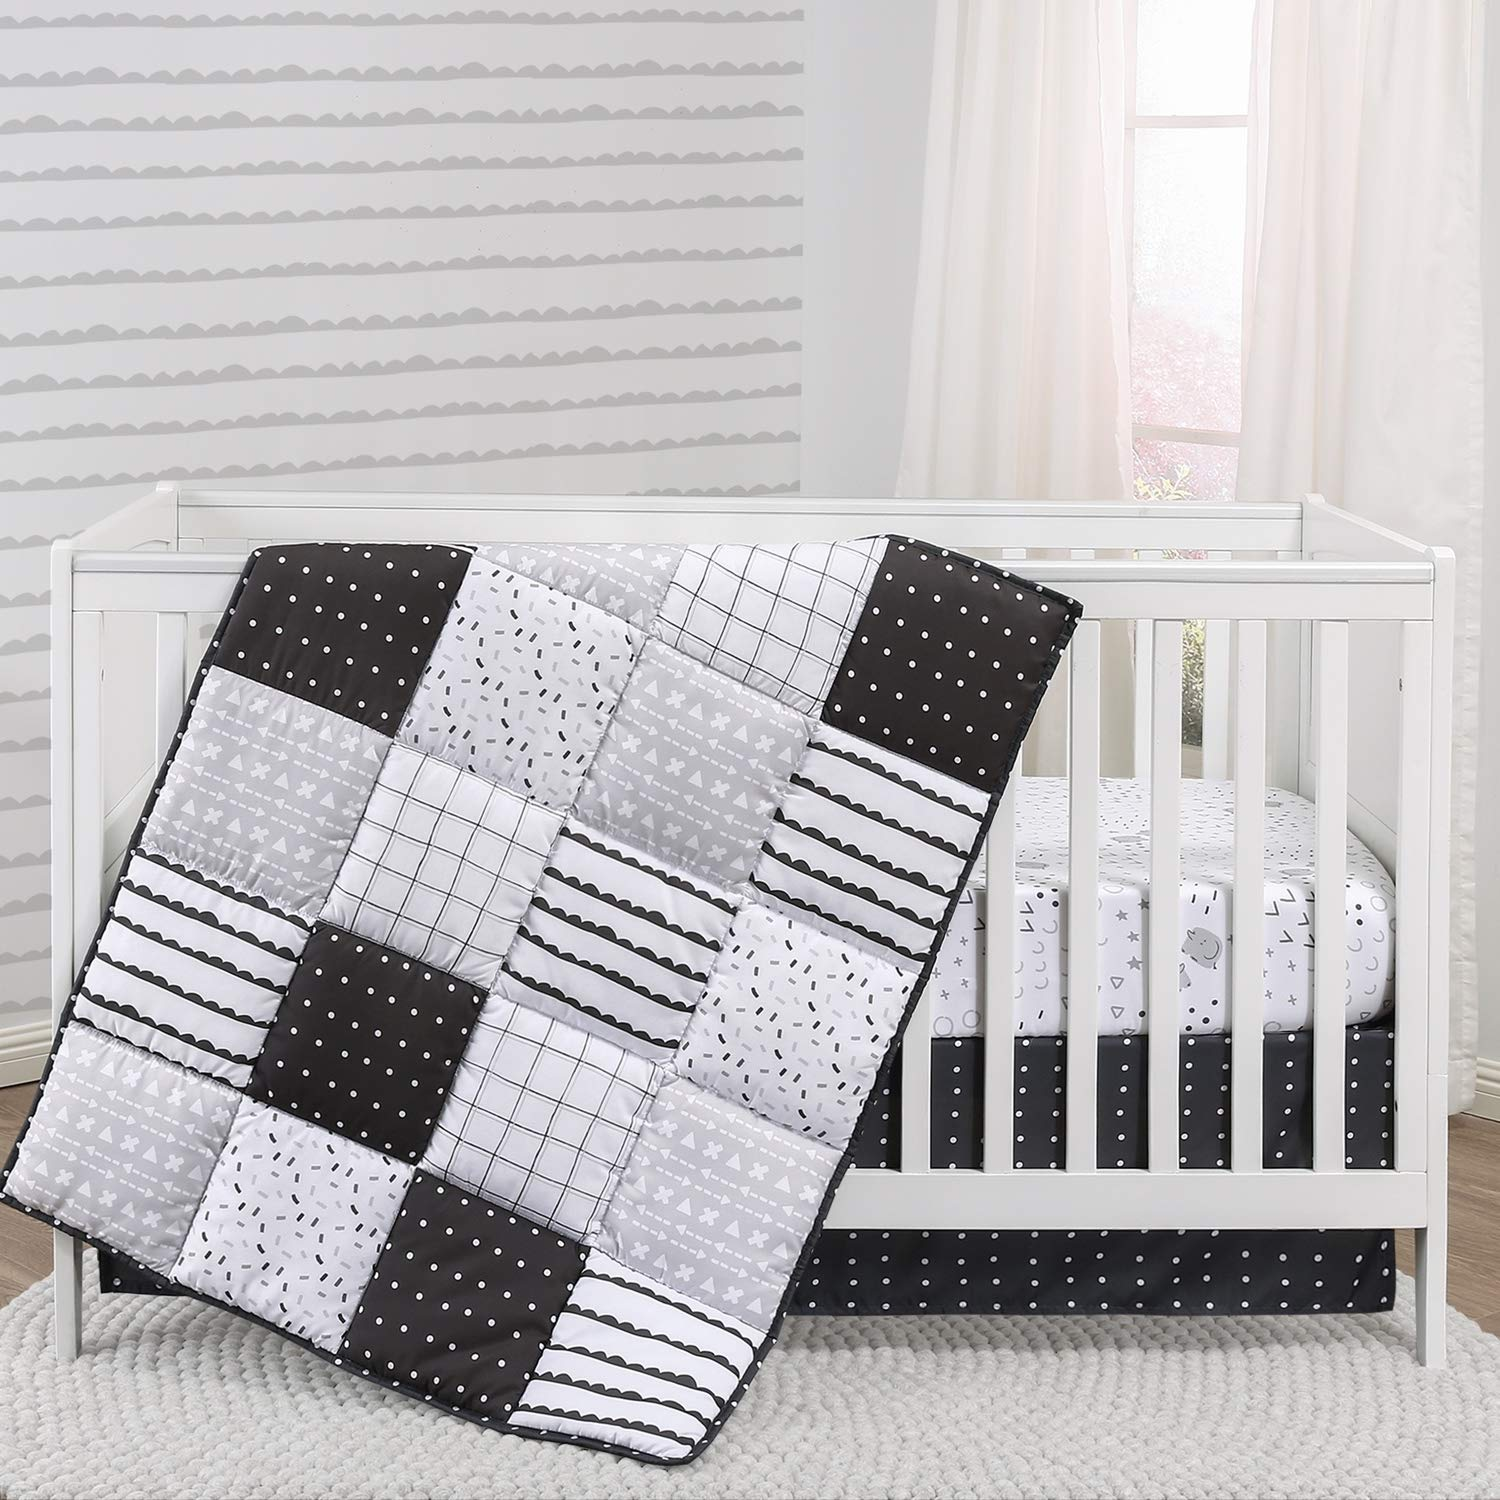 The Peanutshell Black and White Crib Bedding Set for Baby Boys or Girls | 3 Piece Nursery Set | Crib Quilt, Fitted Sheet, Dust Ruffle